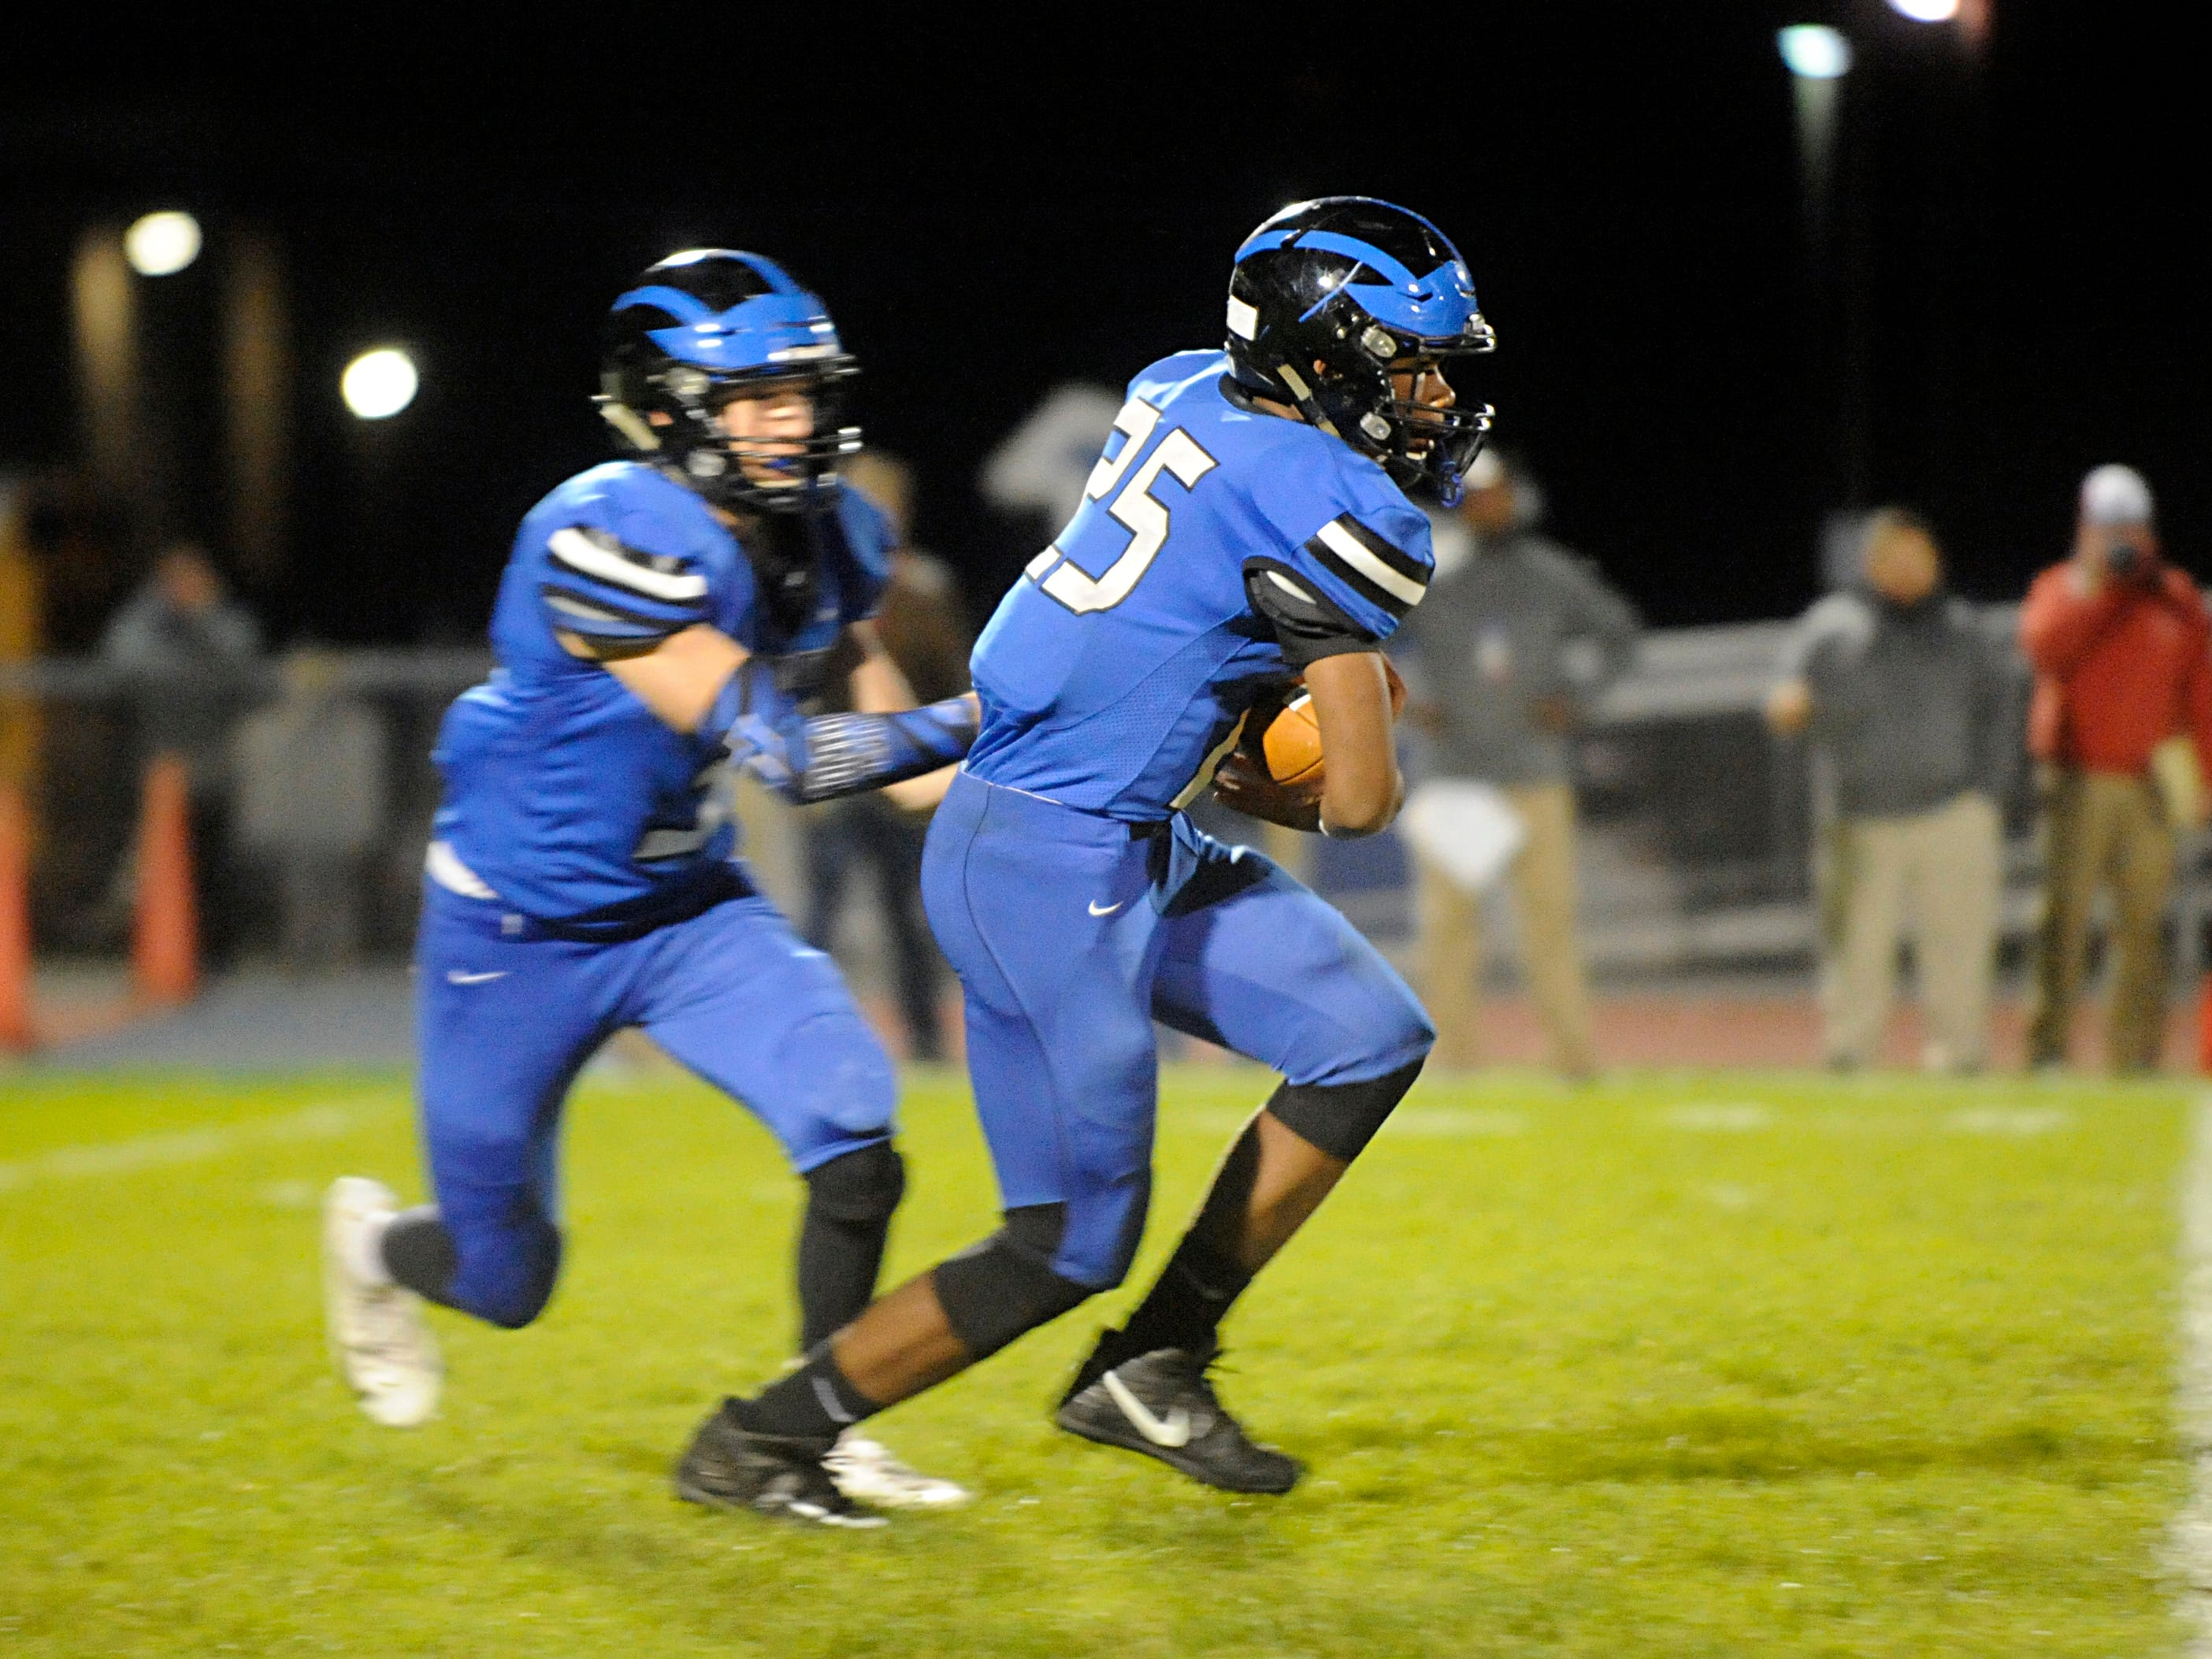 Hammonton's Jaiden Abrams runs for a gain against Eastern. The visiting Vikings topped the Blue Devils, 13-12, on Friday, October 19, 2018.